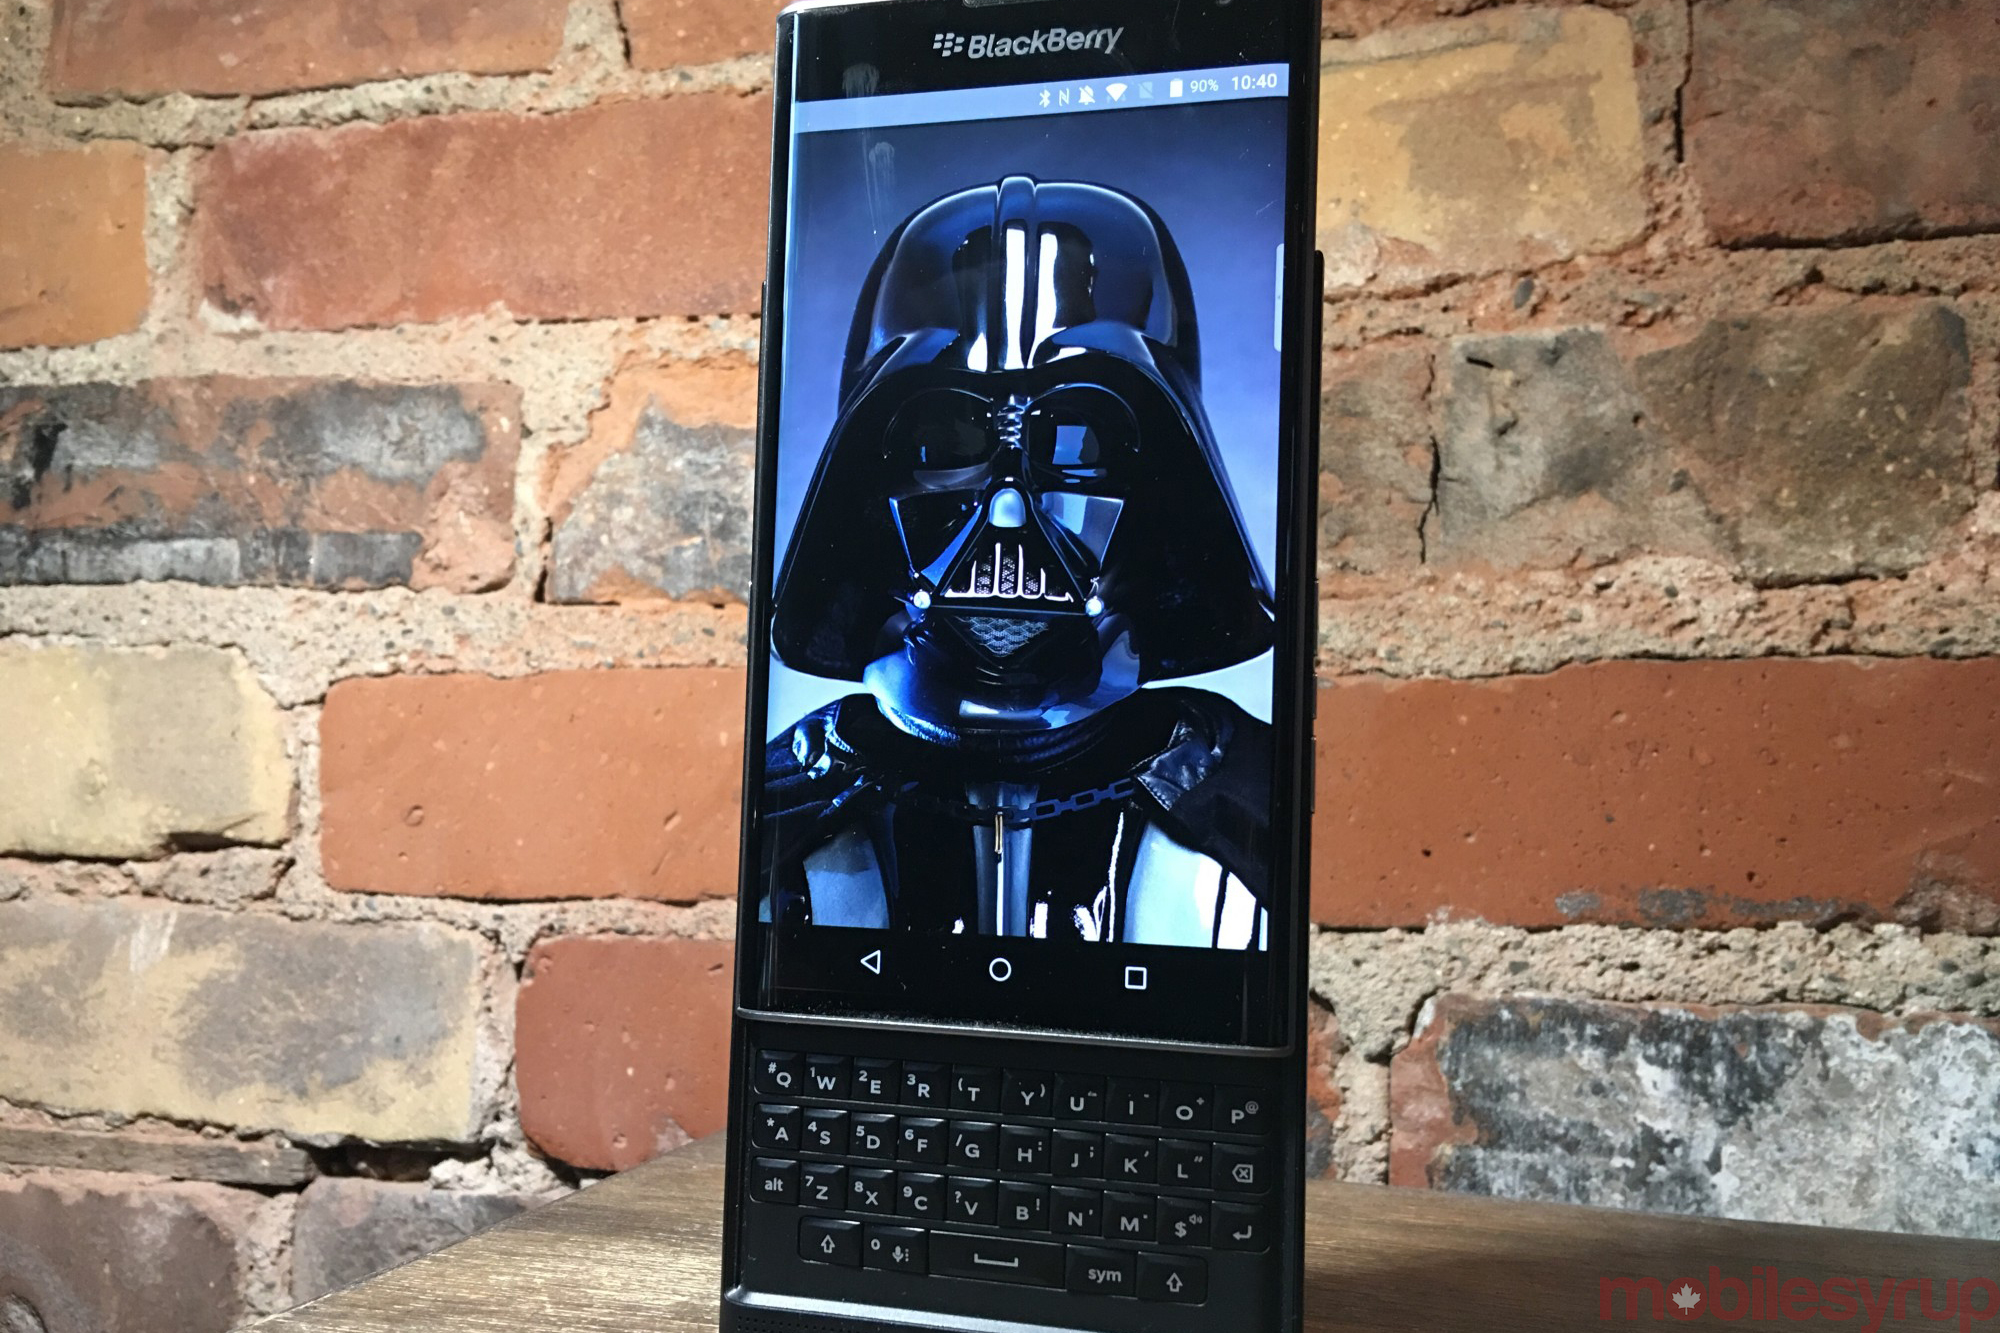 darthvaderblackberry